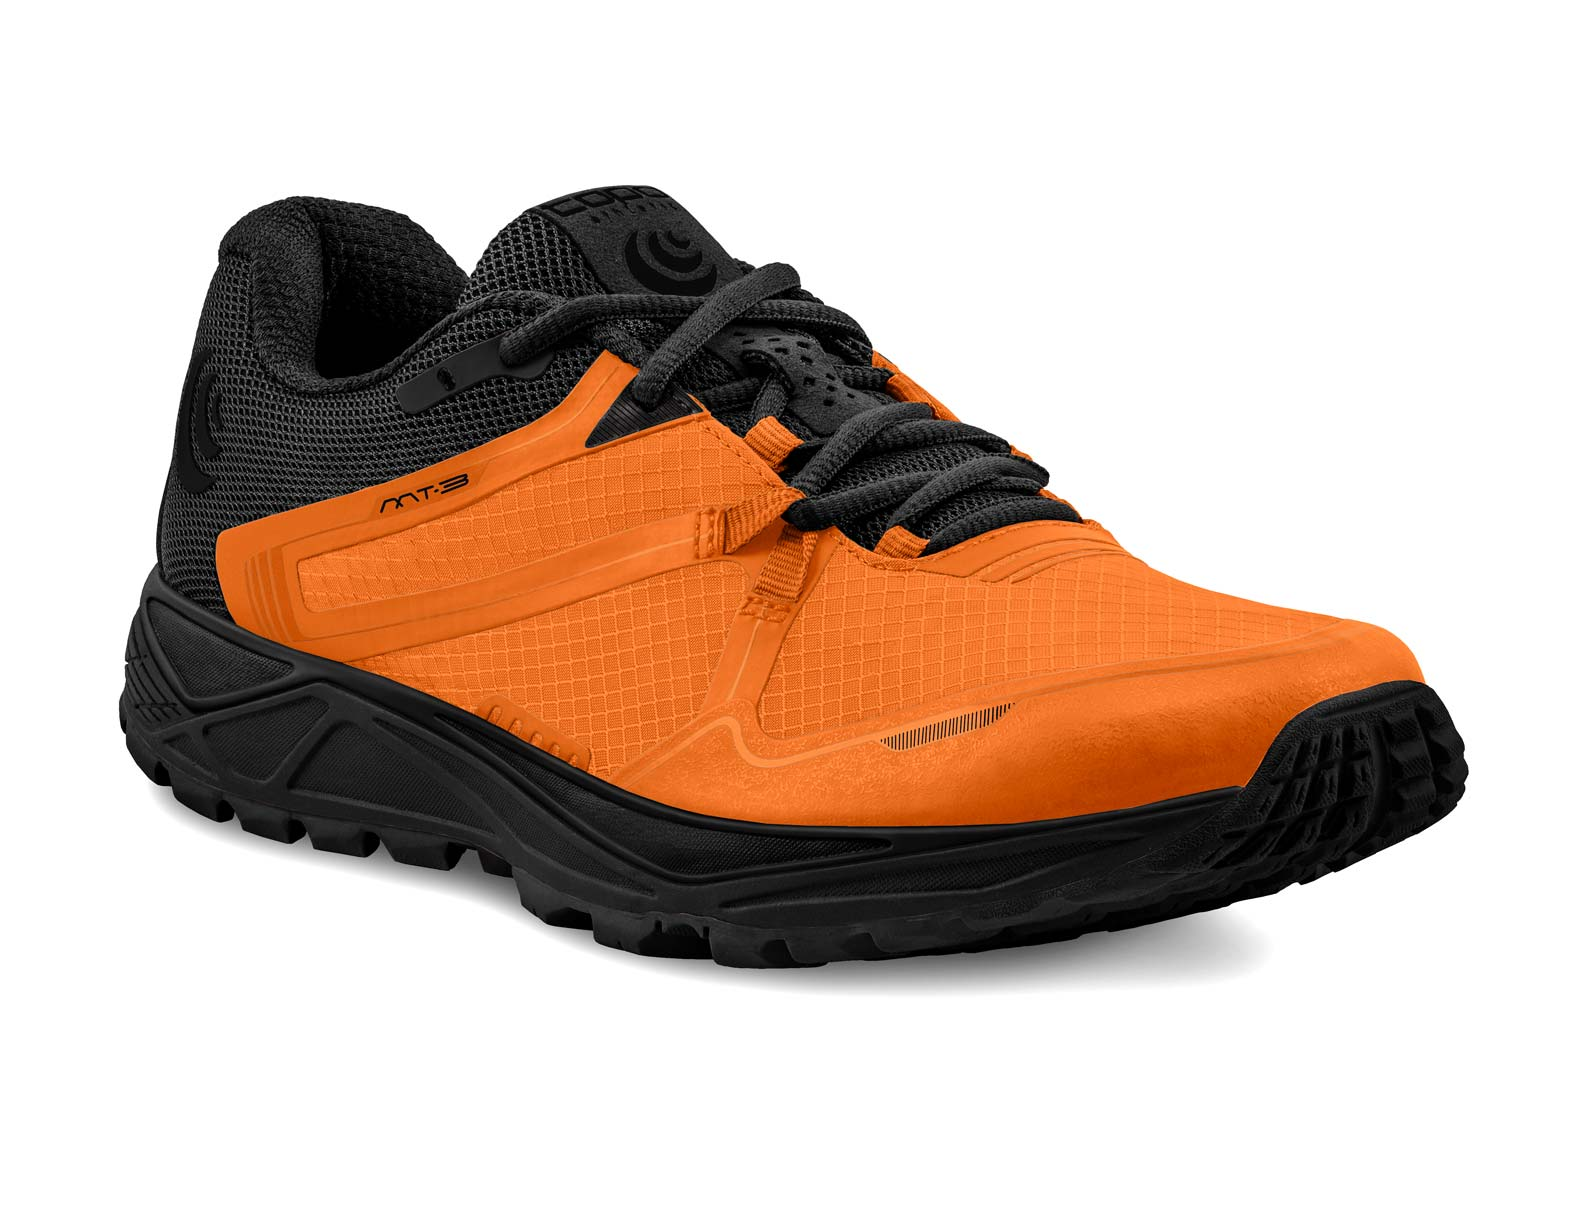 Topo Athletic MT-3 Mens Lightweight Trail Running Shoe in Orange/Black